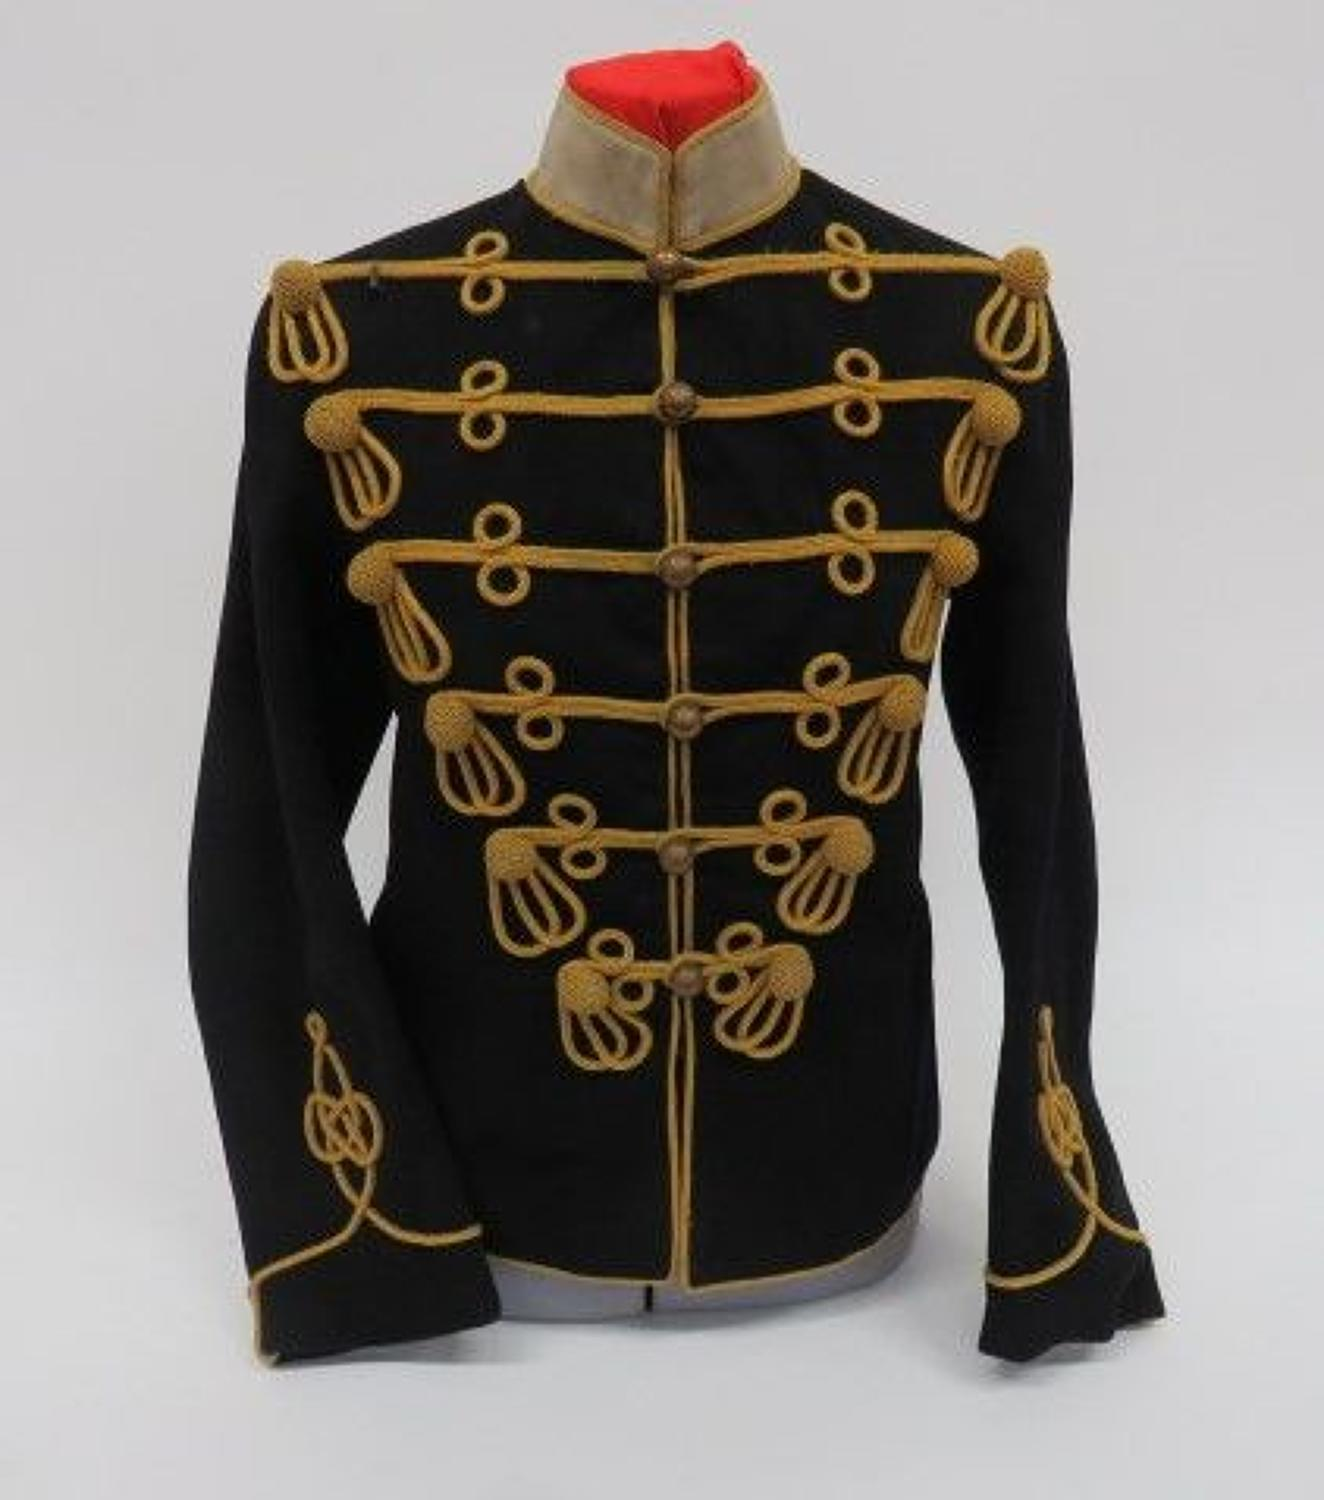 Attributed Pre WW 1 ,13th Hussars Cavalry Dress Tunic